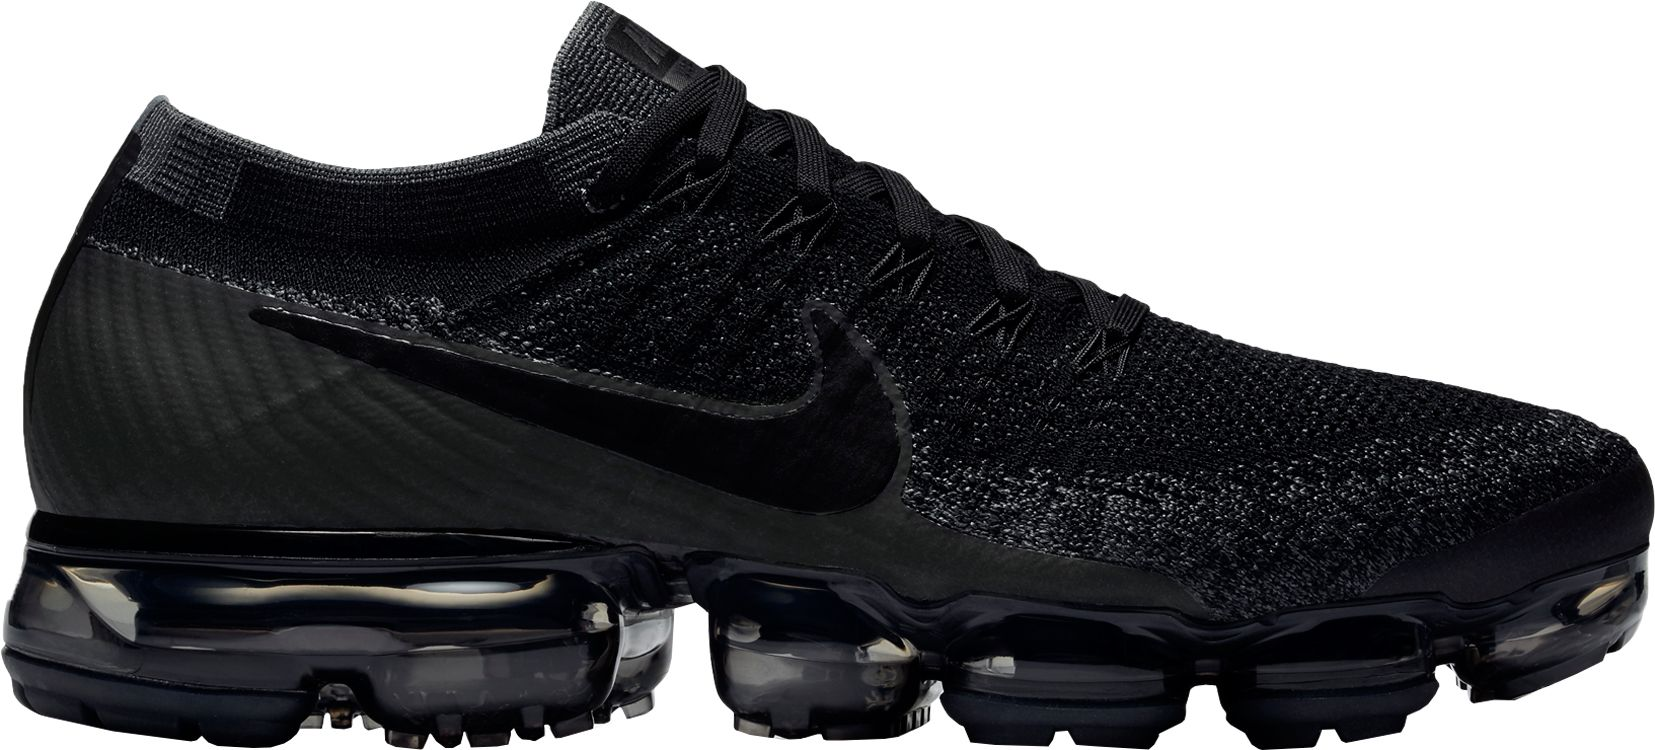 Cheap Nike Ups Innovation With VaporMax WWD